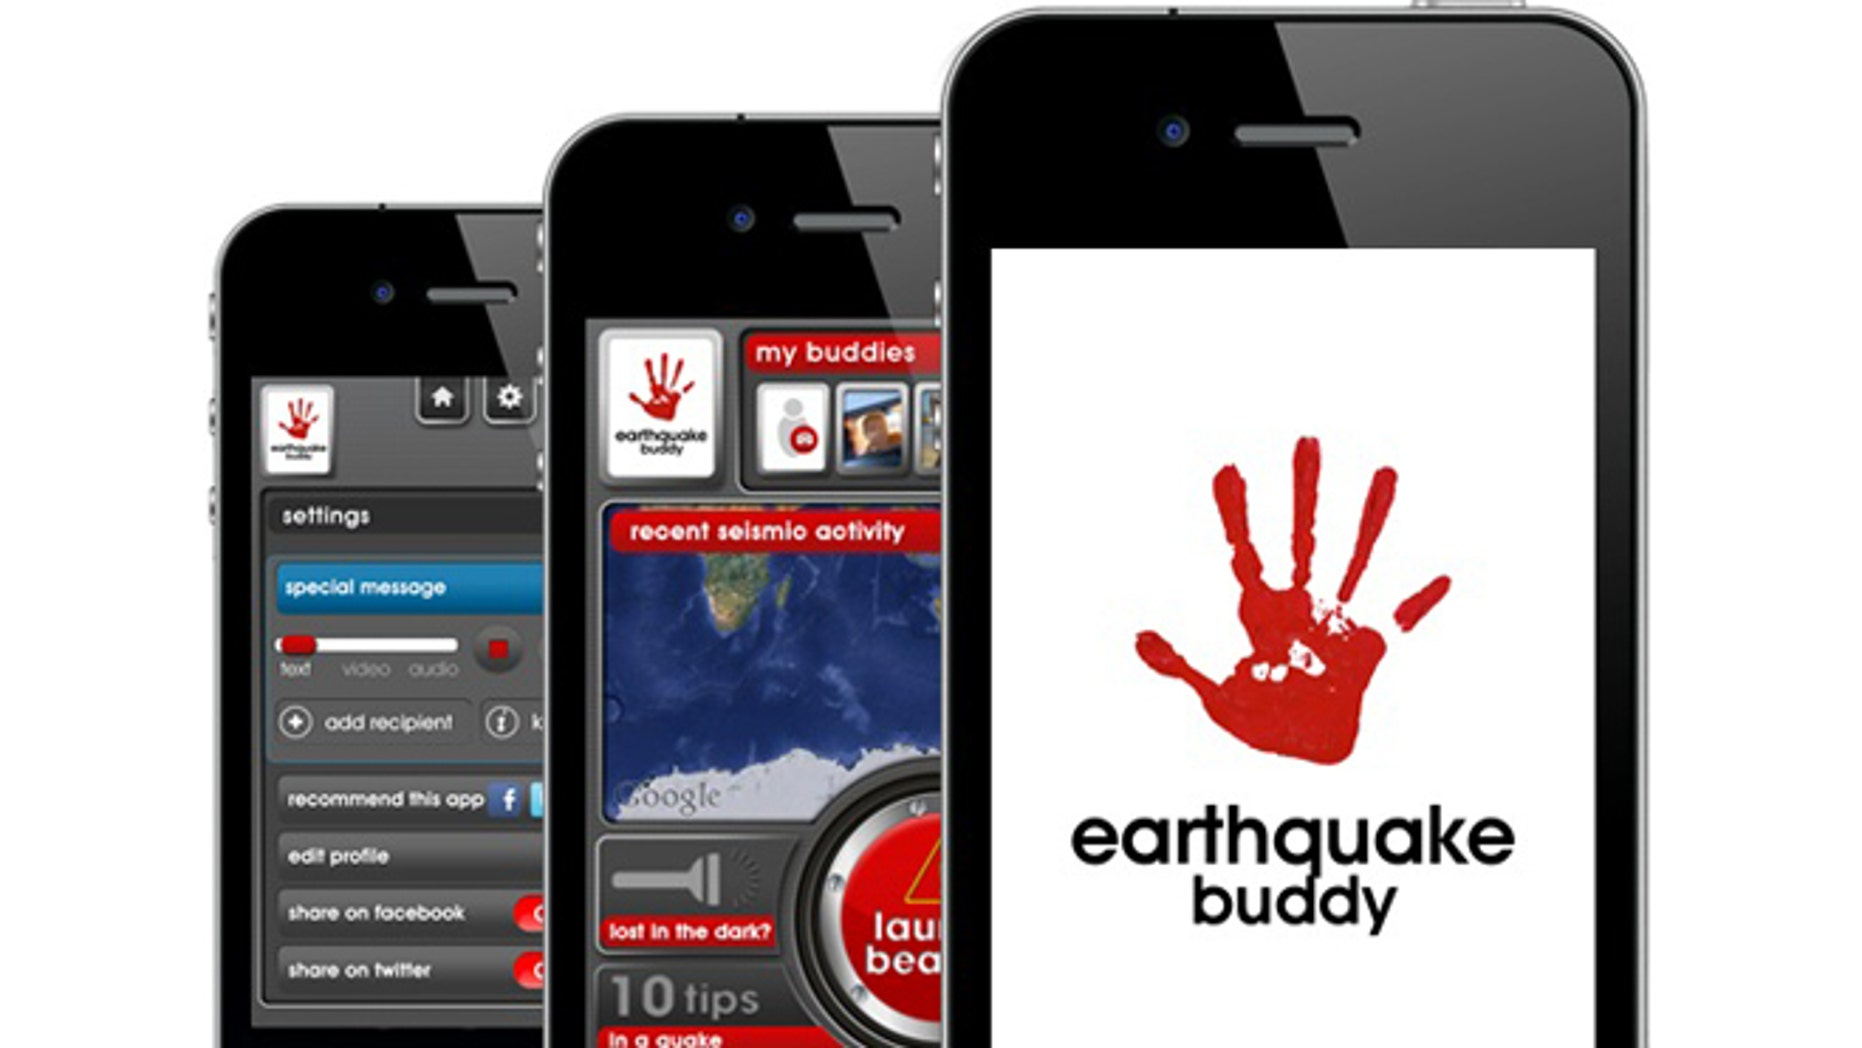 The Earthquake Buddy app will pinpoint your location as soon as an earthquake over magnitude  a 5.5 strikes.